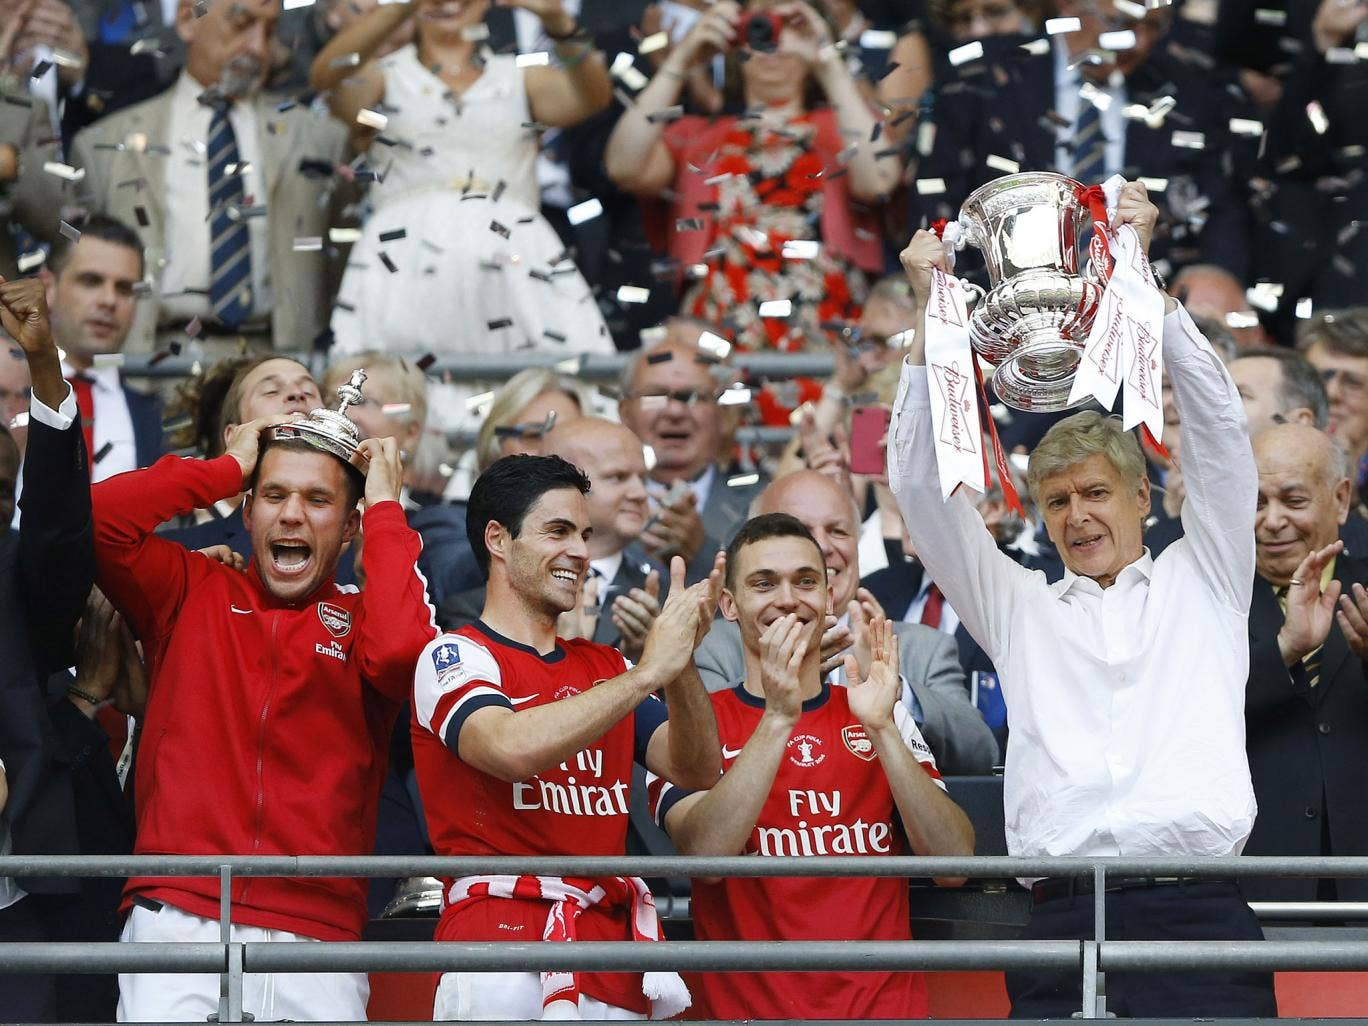 Back in the old routine: Arsène Wenger, the Arsenal manager, still remembers what to do with a trophy as he lifts the 2014 FA Cup after a thrilling 3-2 comeback victory over Hull City in the final